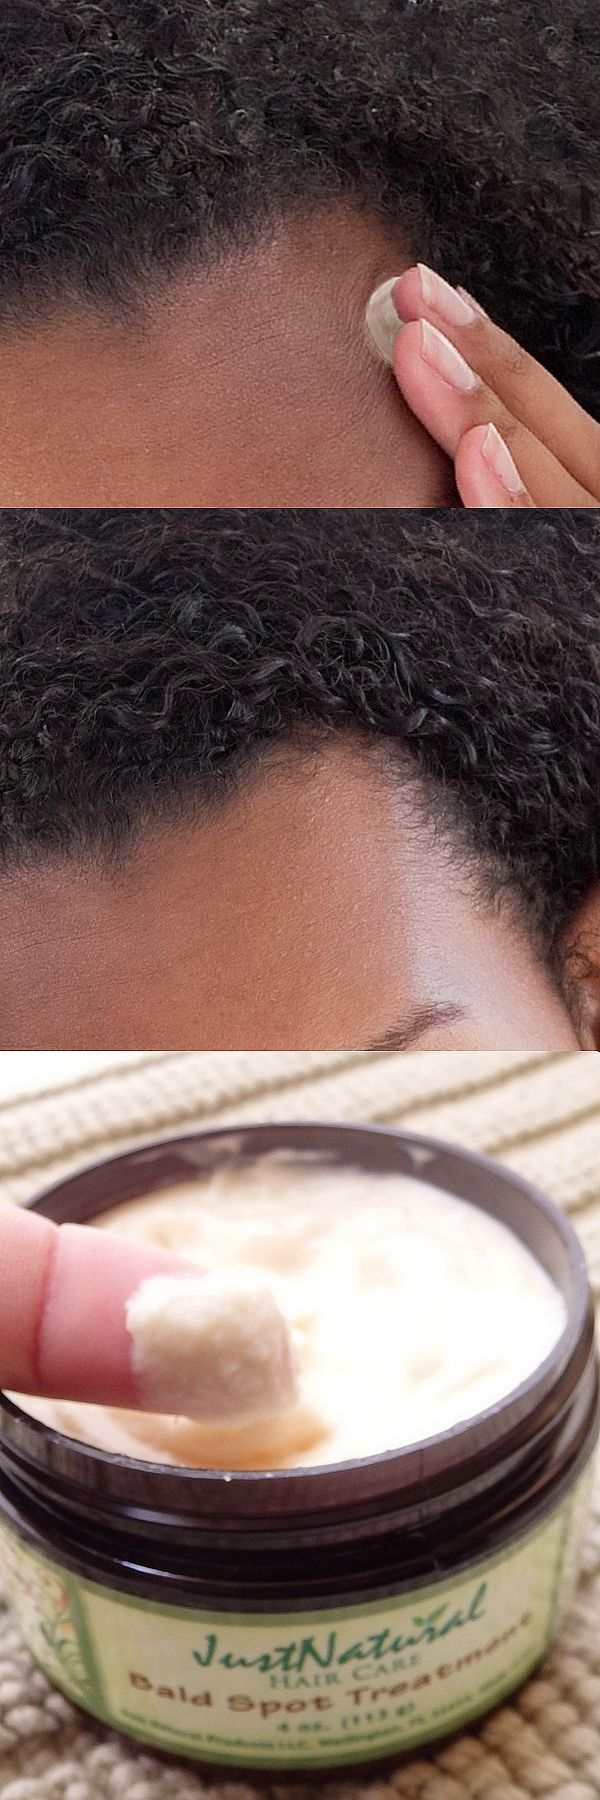 I am African American and have very thick, coarse hair that tends to be very dry. I started with a couple of small spots. I have been using the cream for 3 months and honestly the spots are almost gone. I also using the shampoo for hair loss.